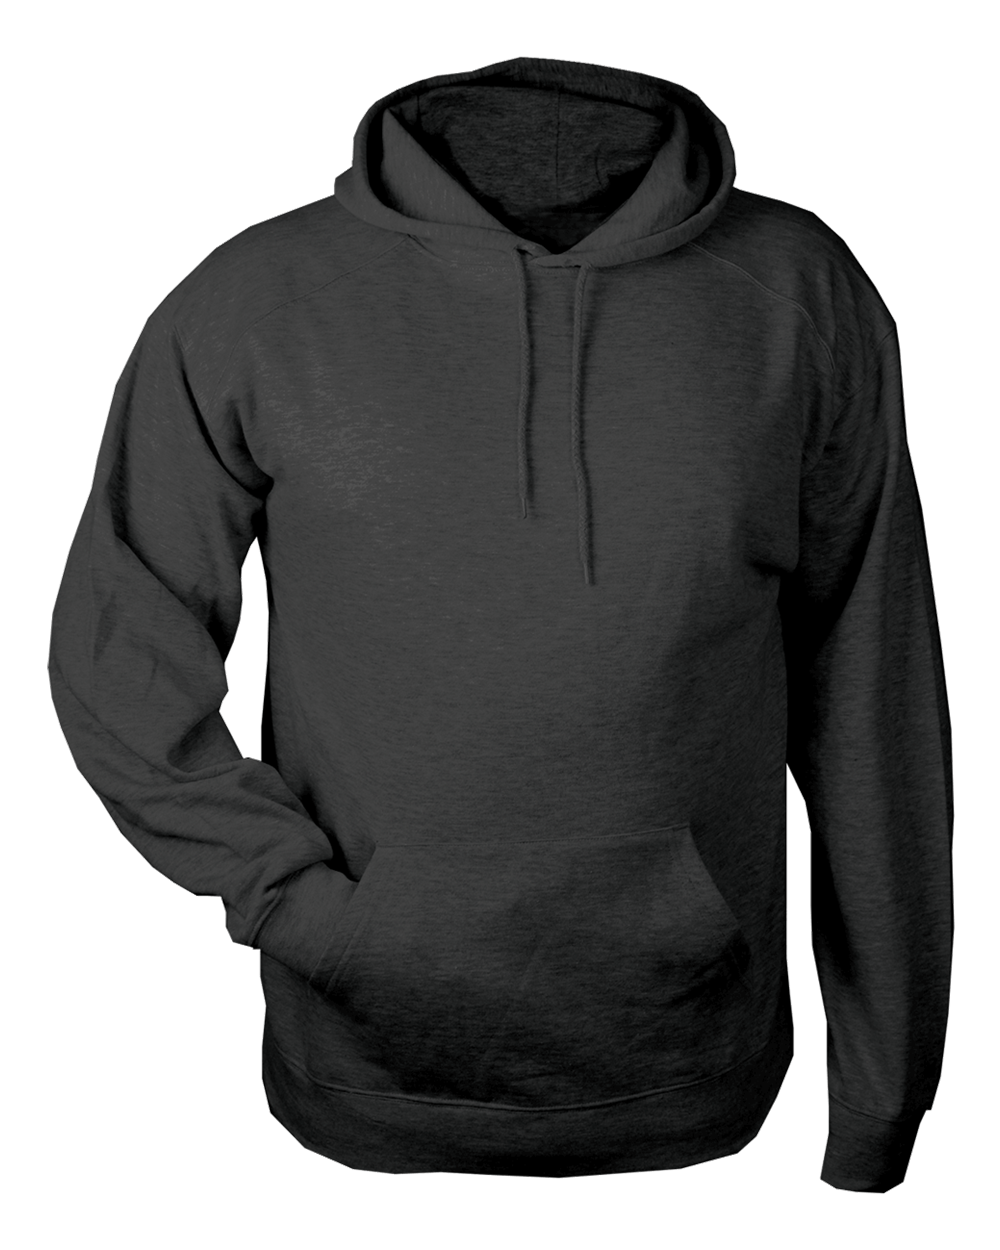 C2 Fleece Hood - Black